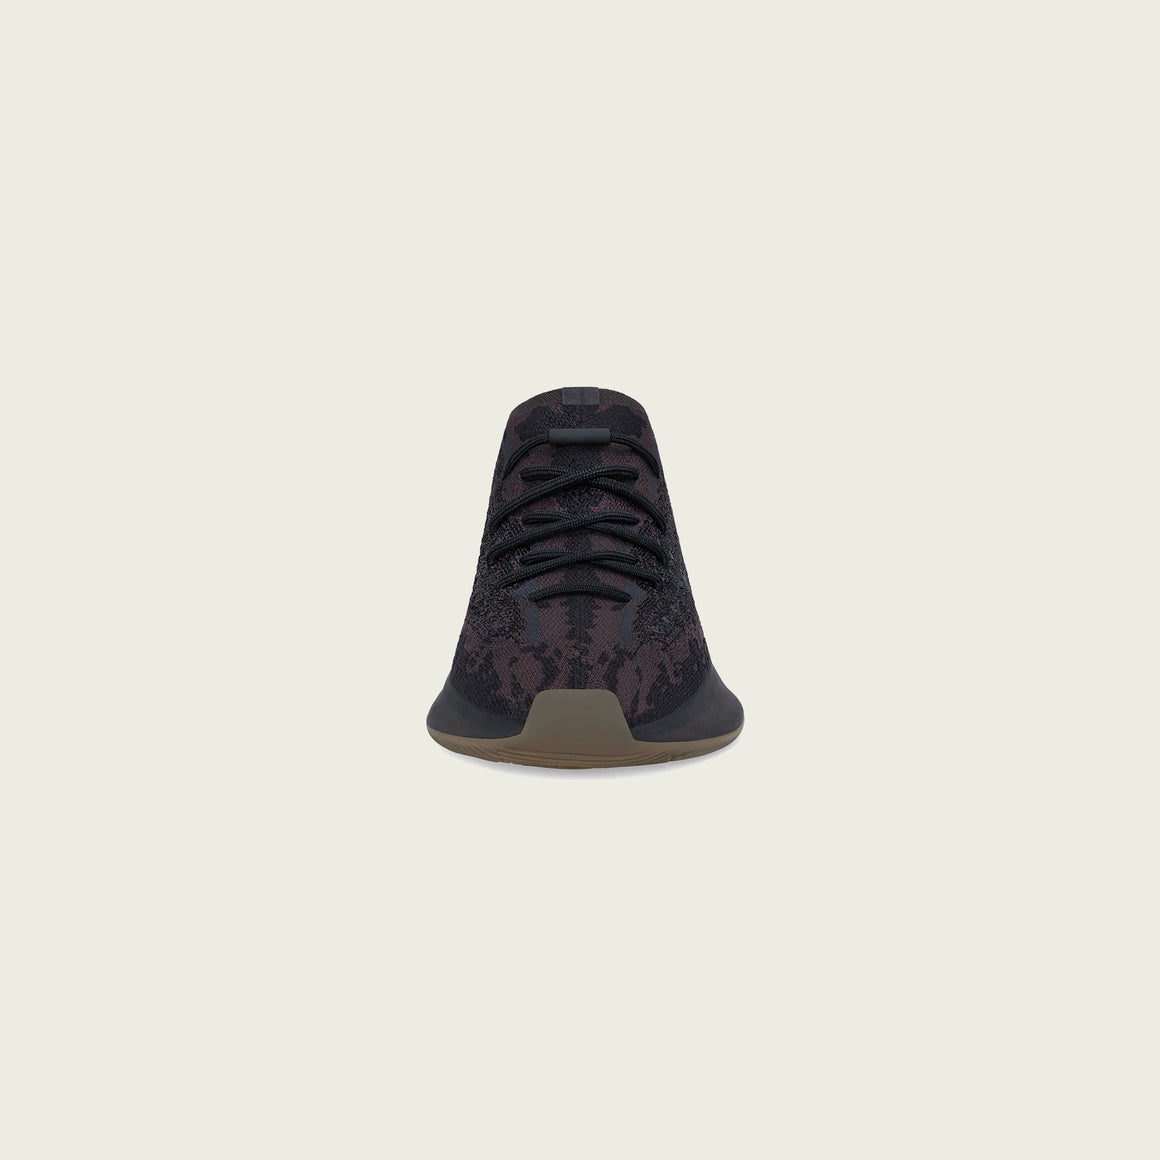 adidas - Yeezy Boost 380 - Onyx - Up There